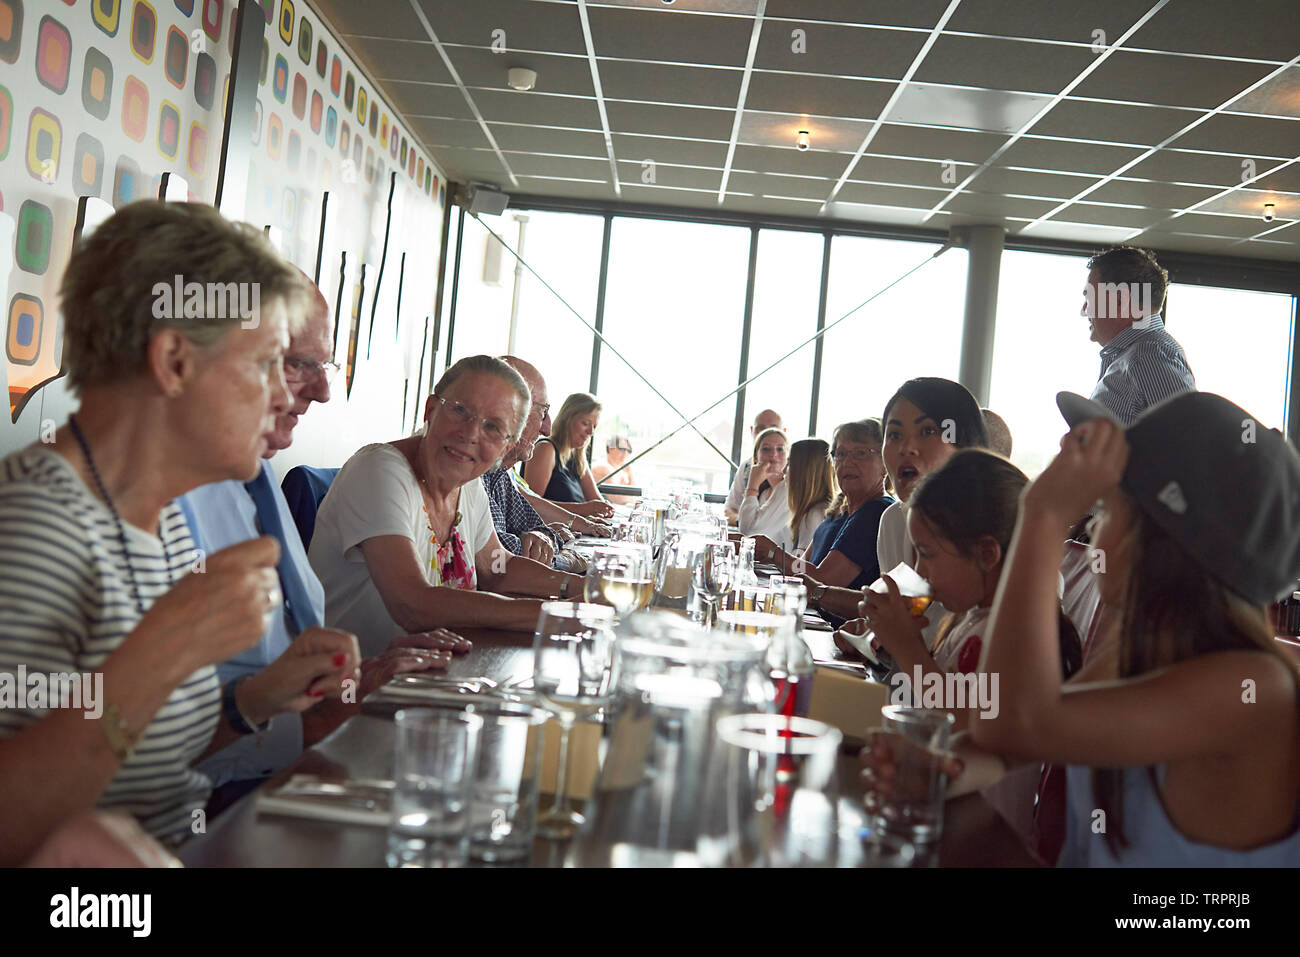 A group of elderly retired friends celebrating a 50th wedding anniversary at a restaurant with lots of laughter, speeches, presents, and joy - Stock Image